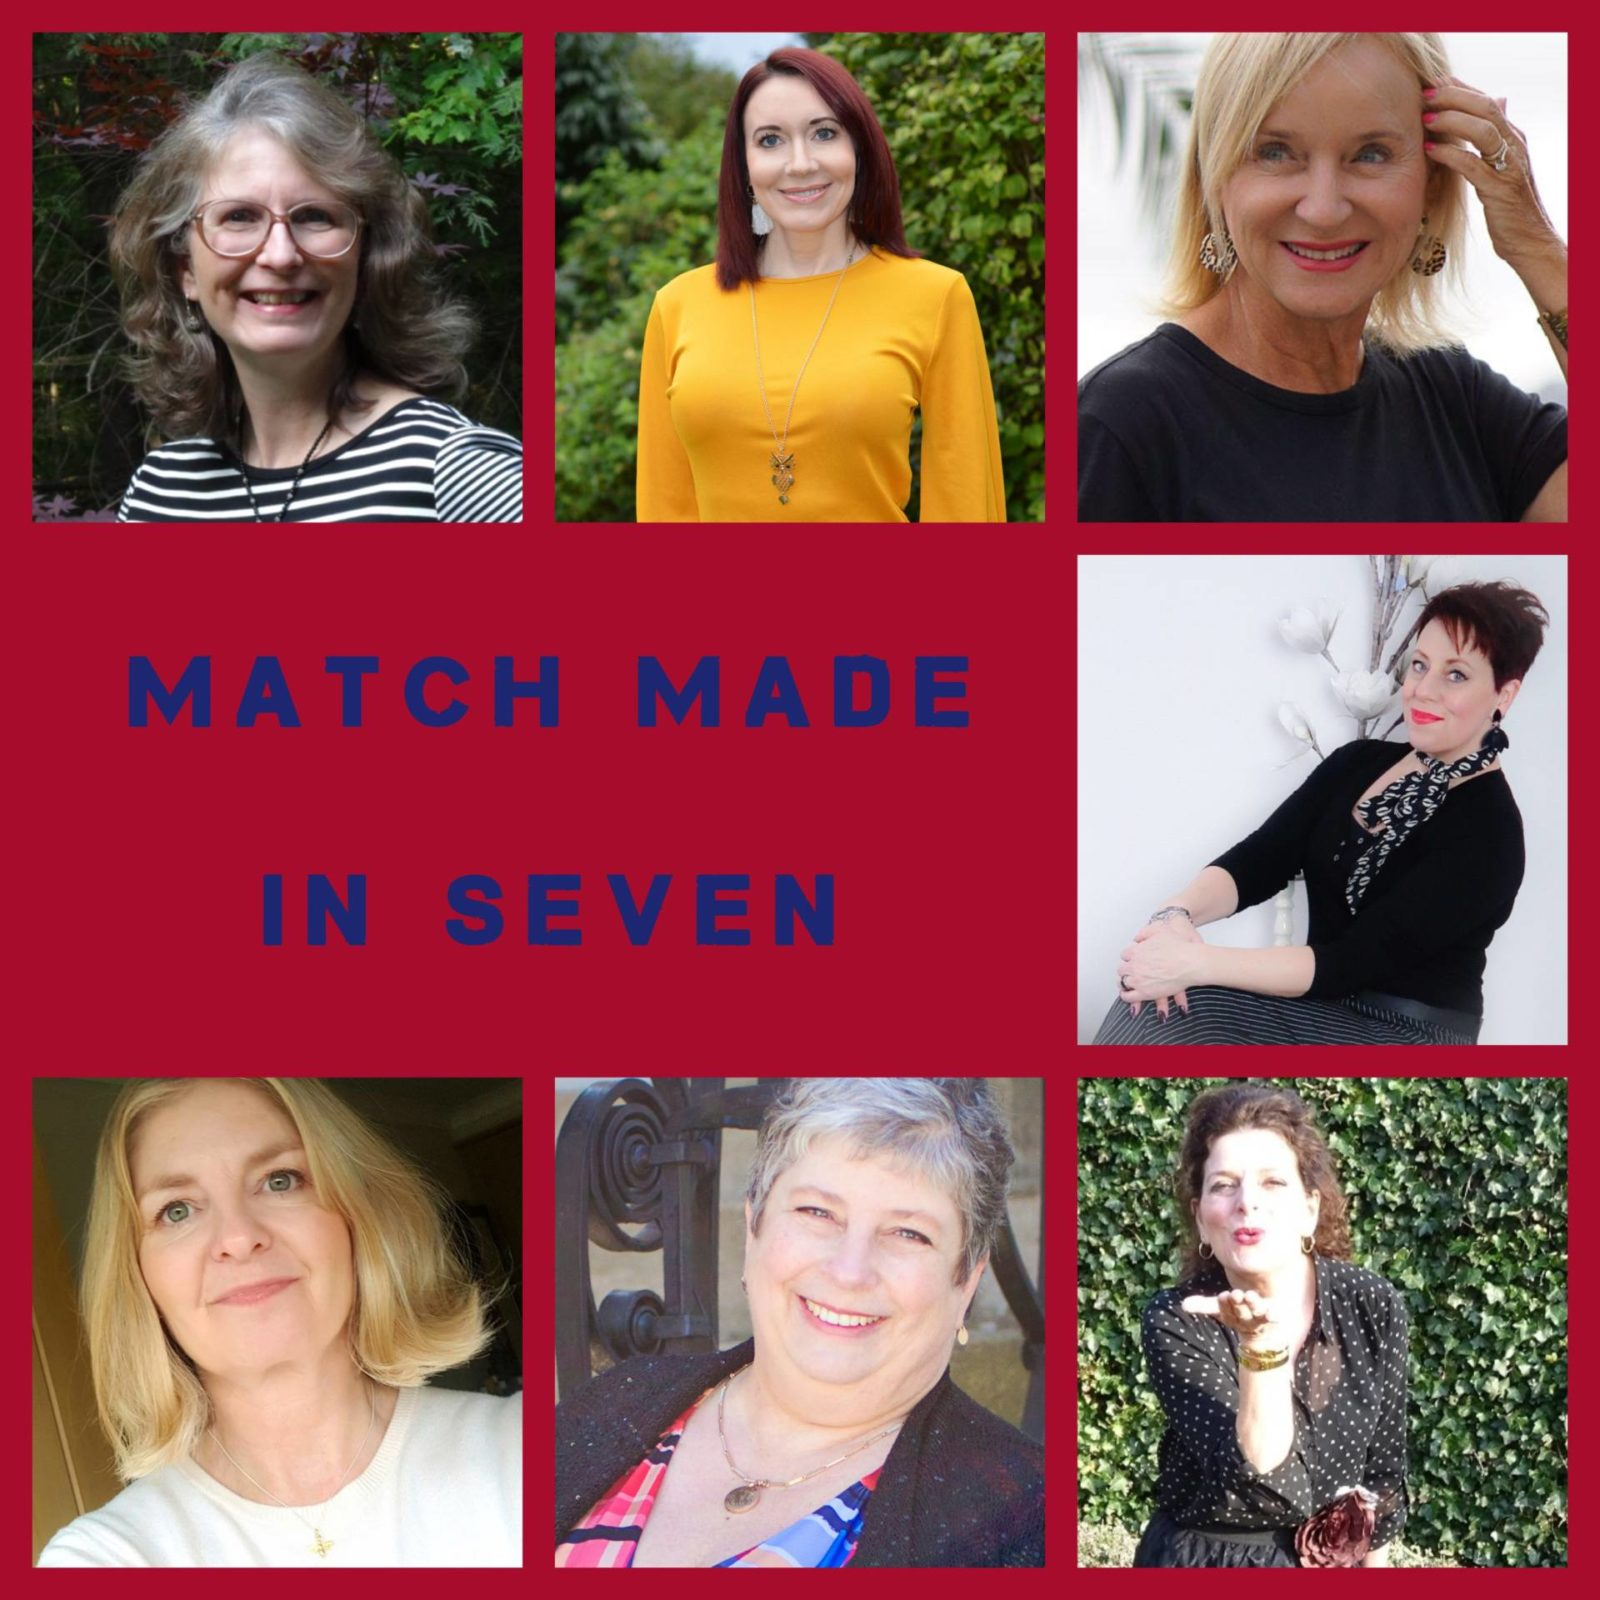 Match Made in Seven collage